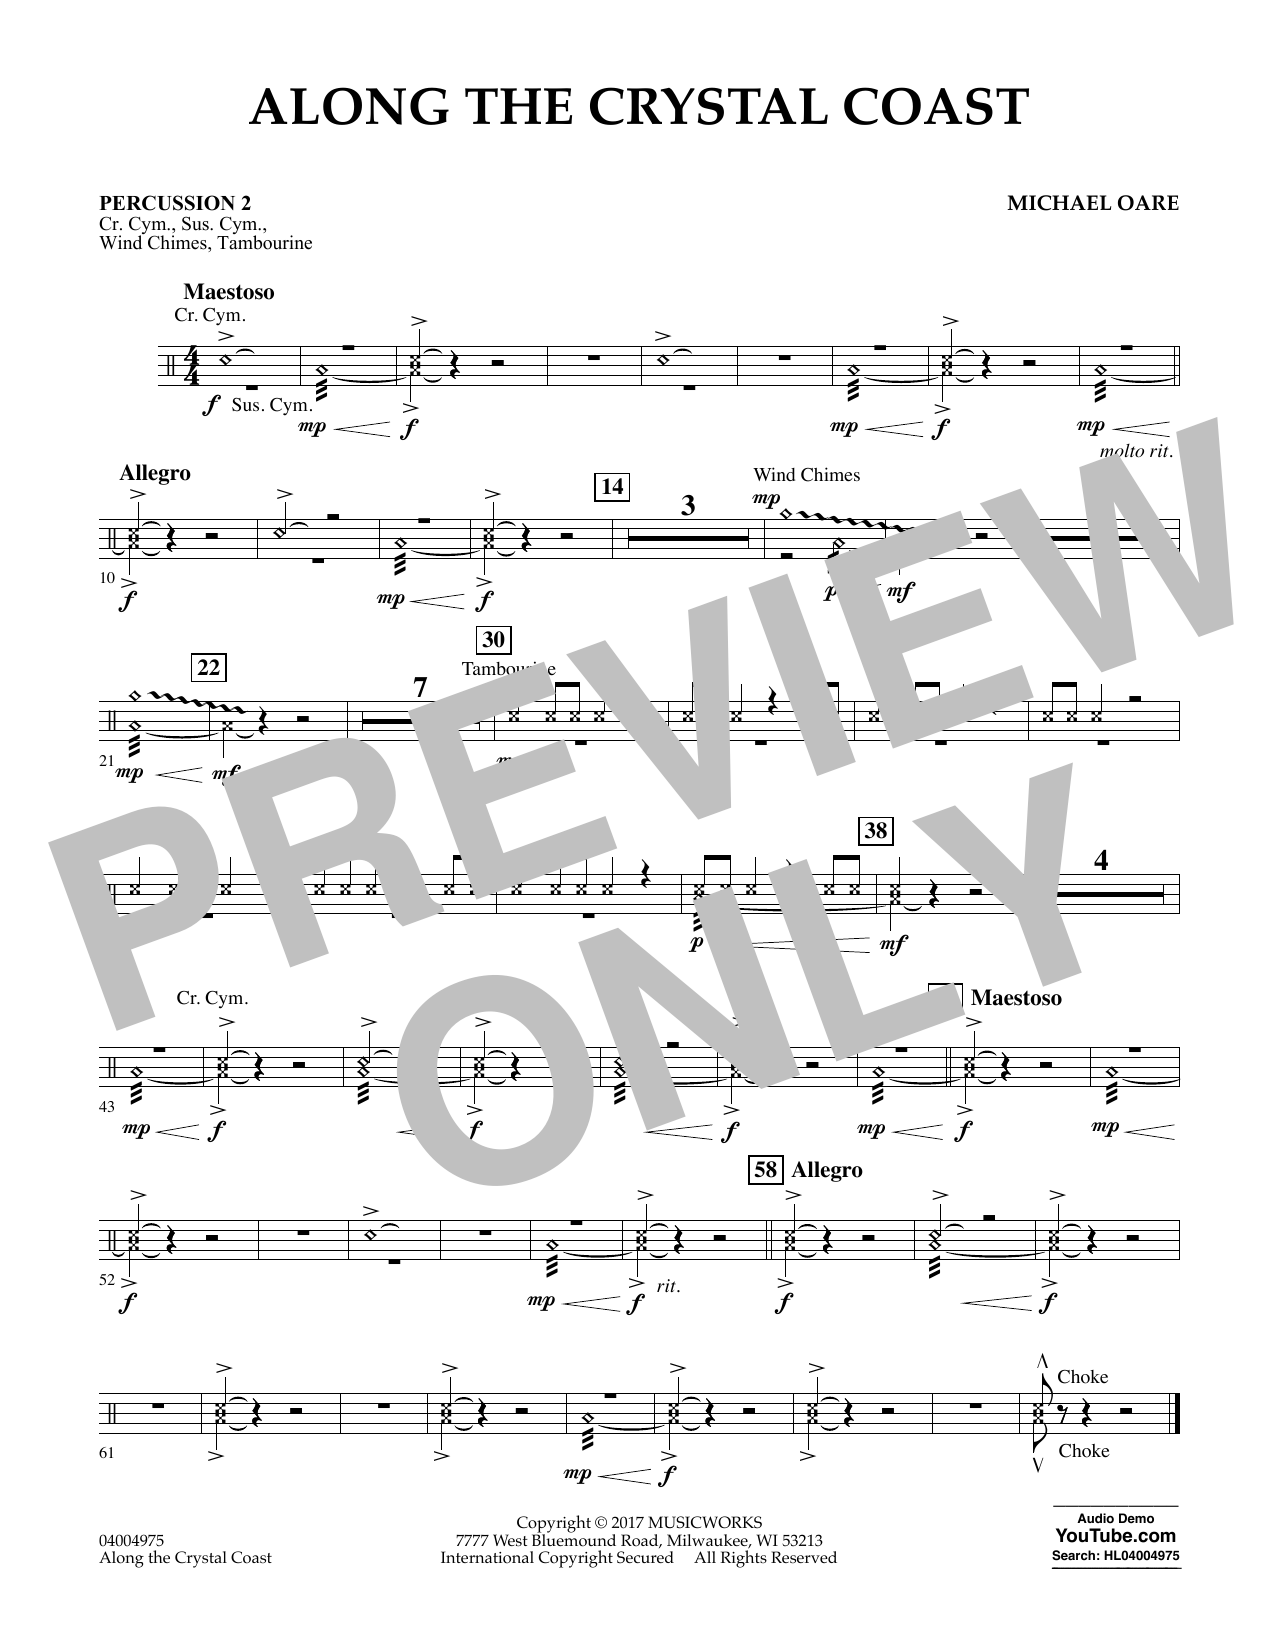 Along the Crystal Coast - Percussion 2 Sheet Music